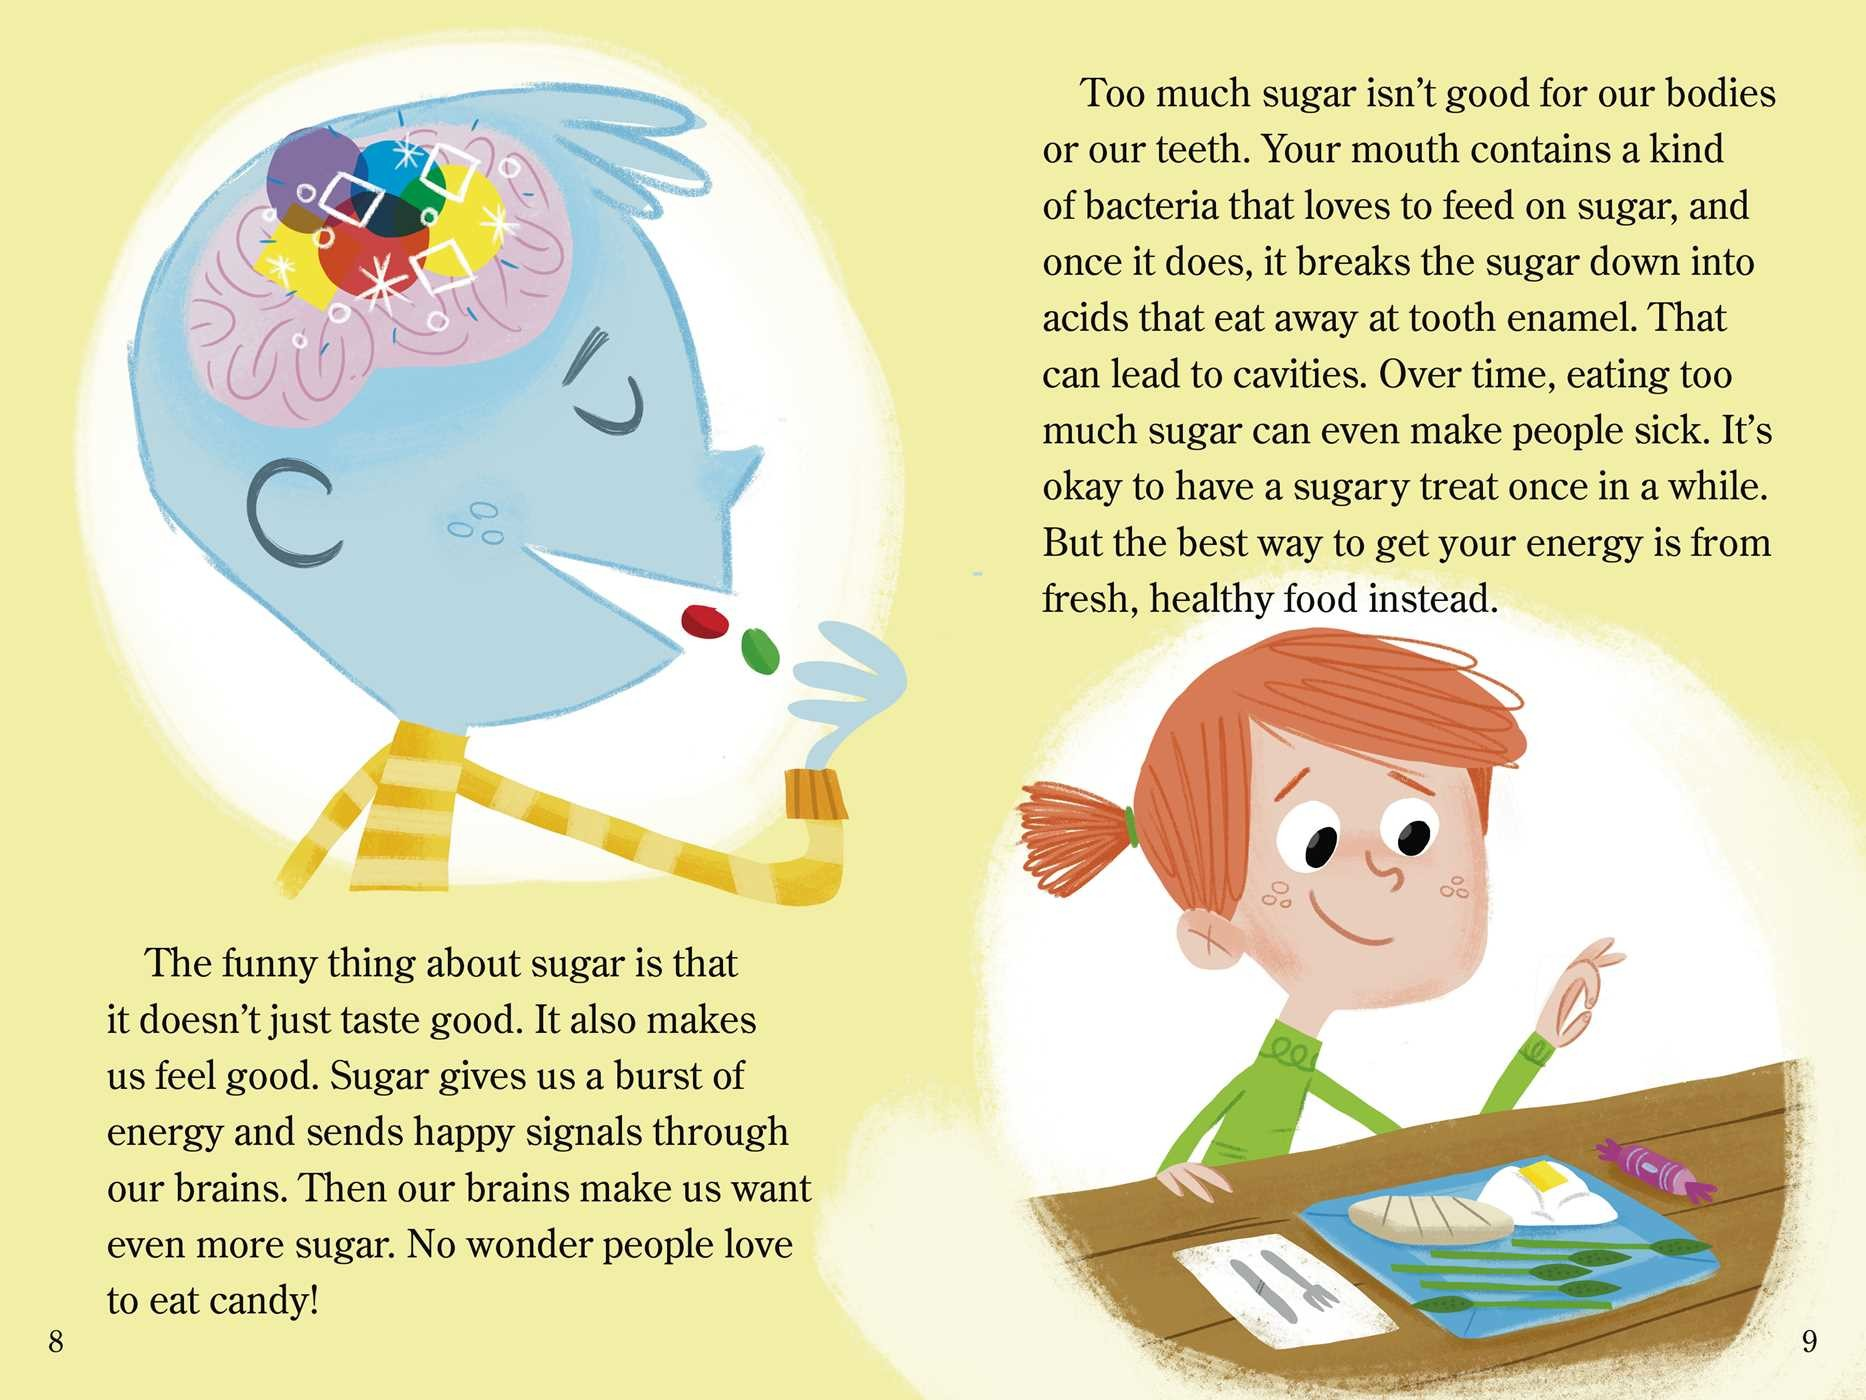 The sugary secrets behind candy 9781481456265.in02